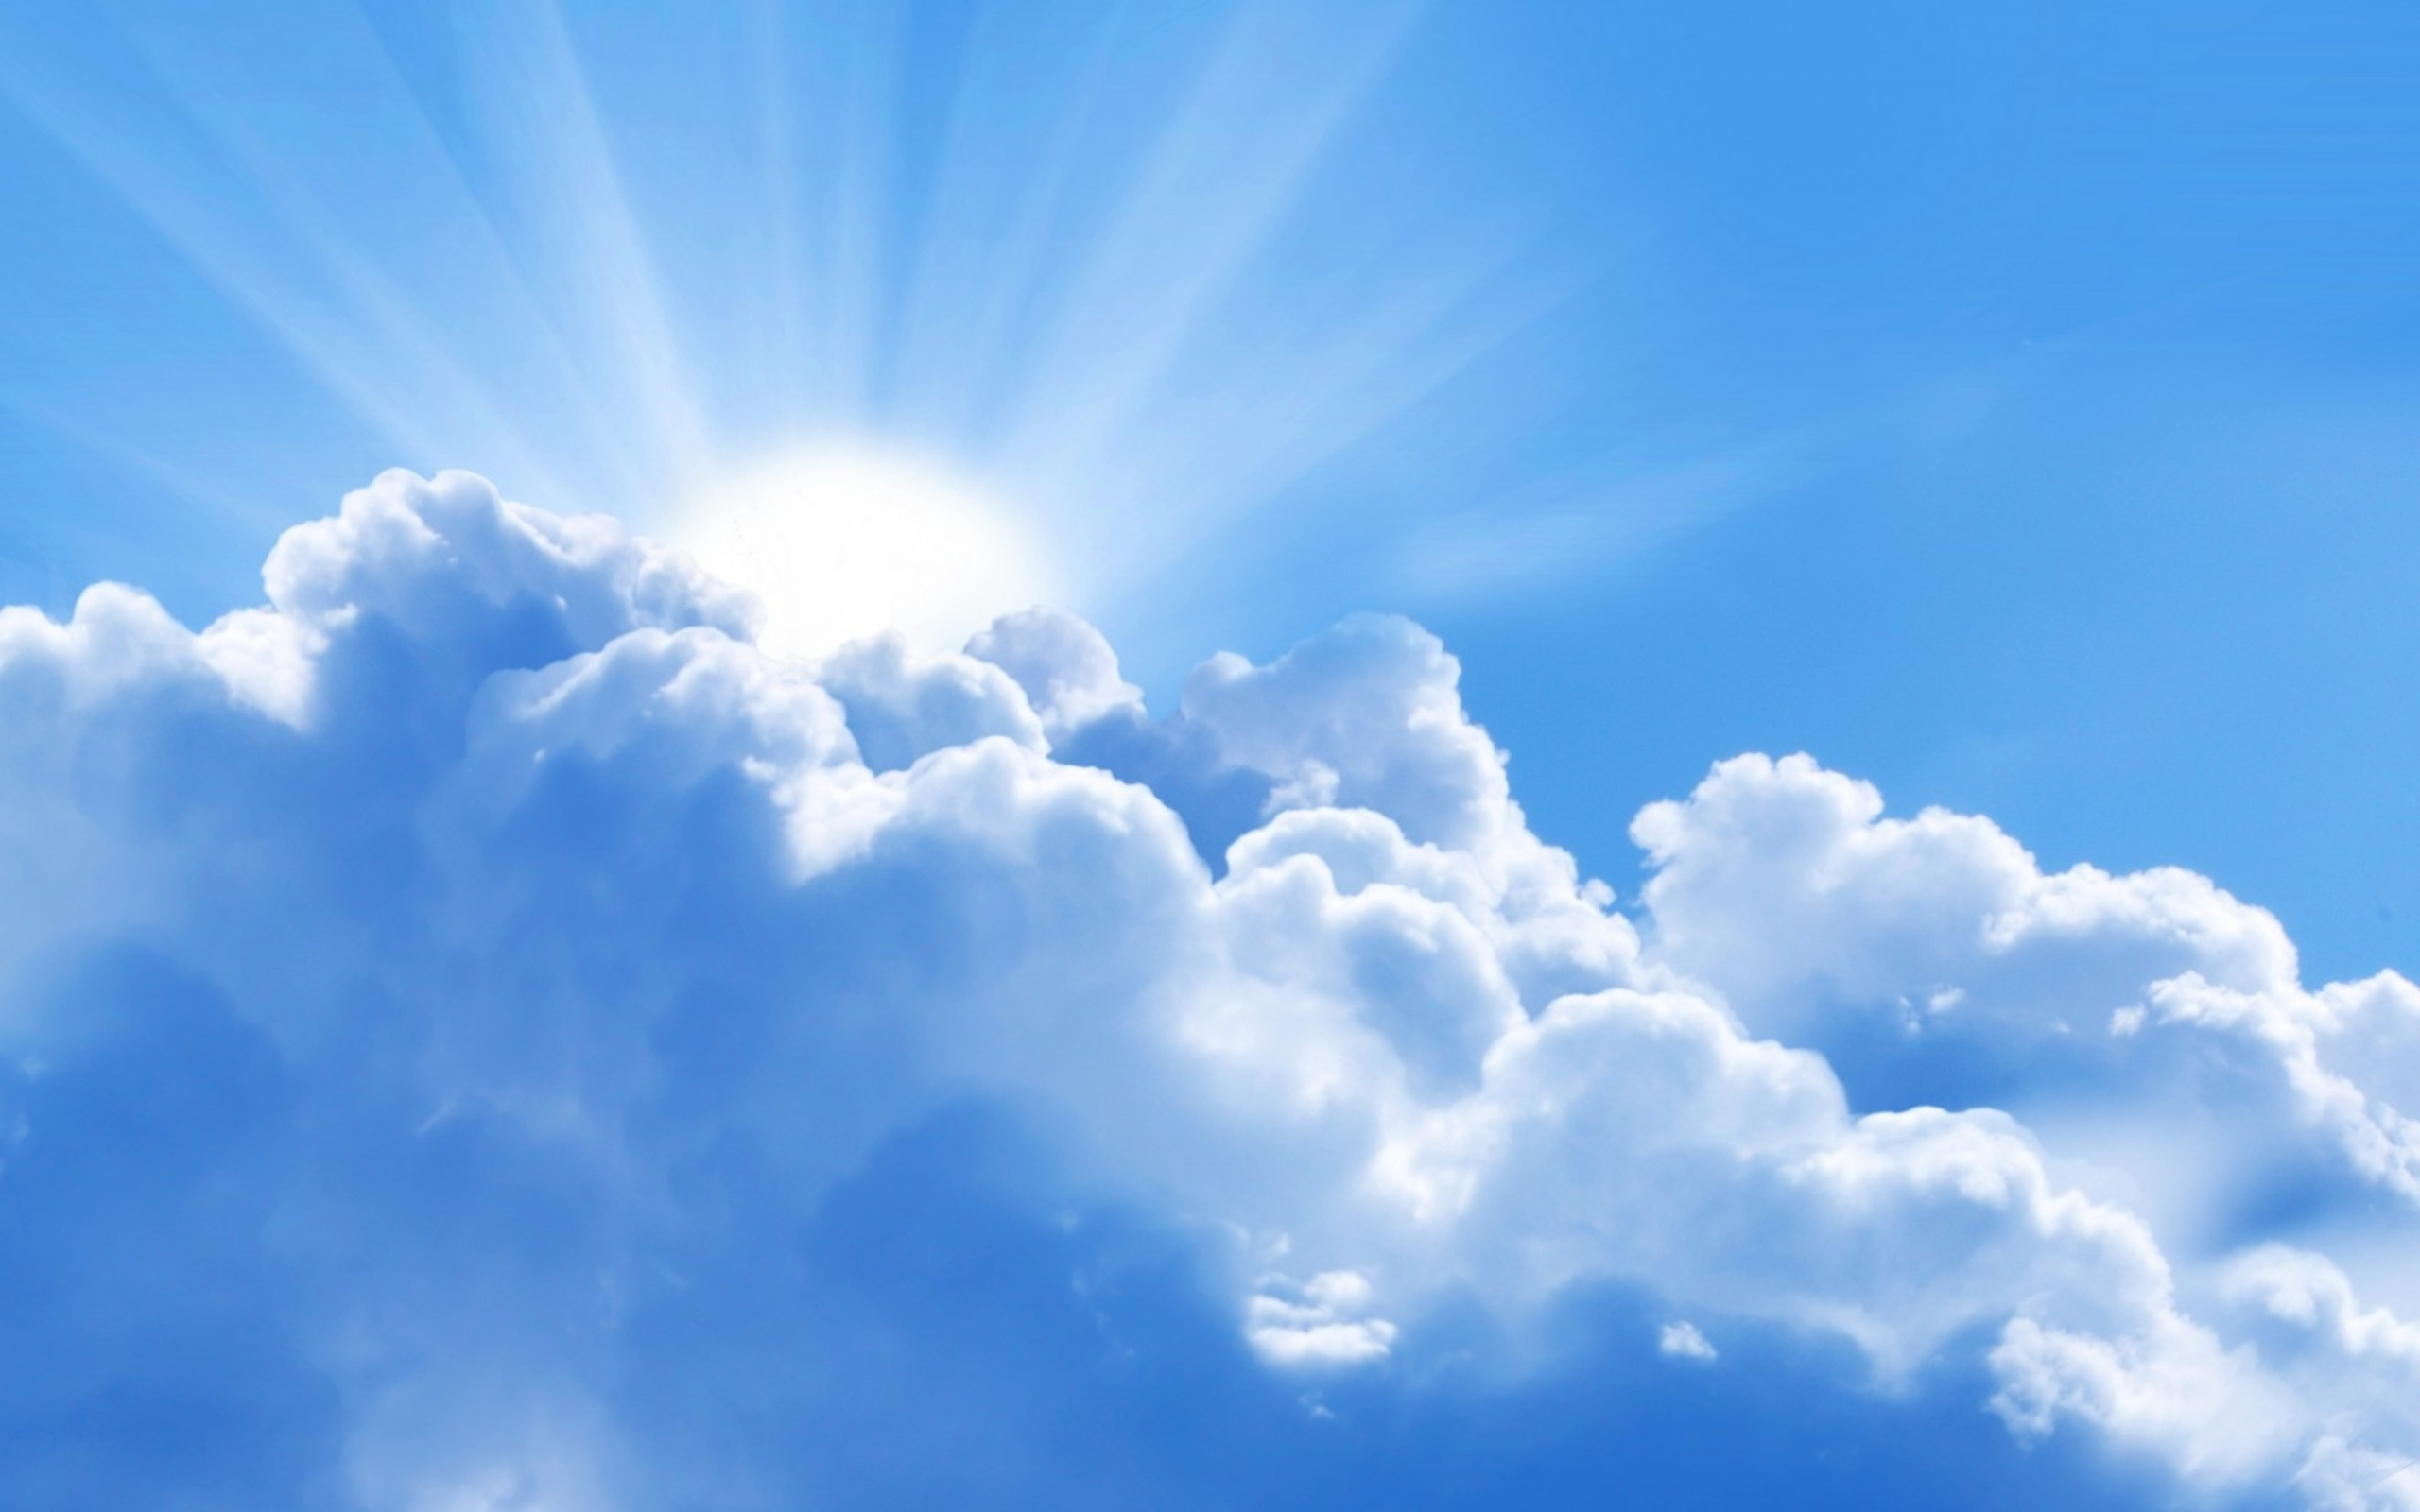 Blue Cloud on The Sky wallpapers55com   Best Wallpapers for PCs 2560x1600